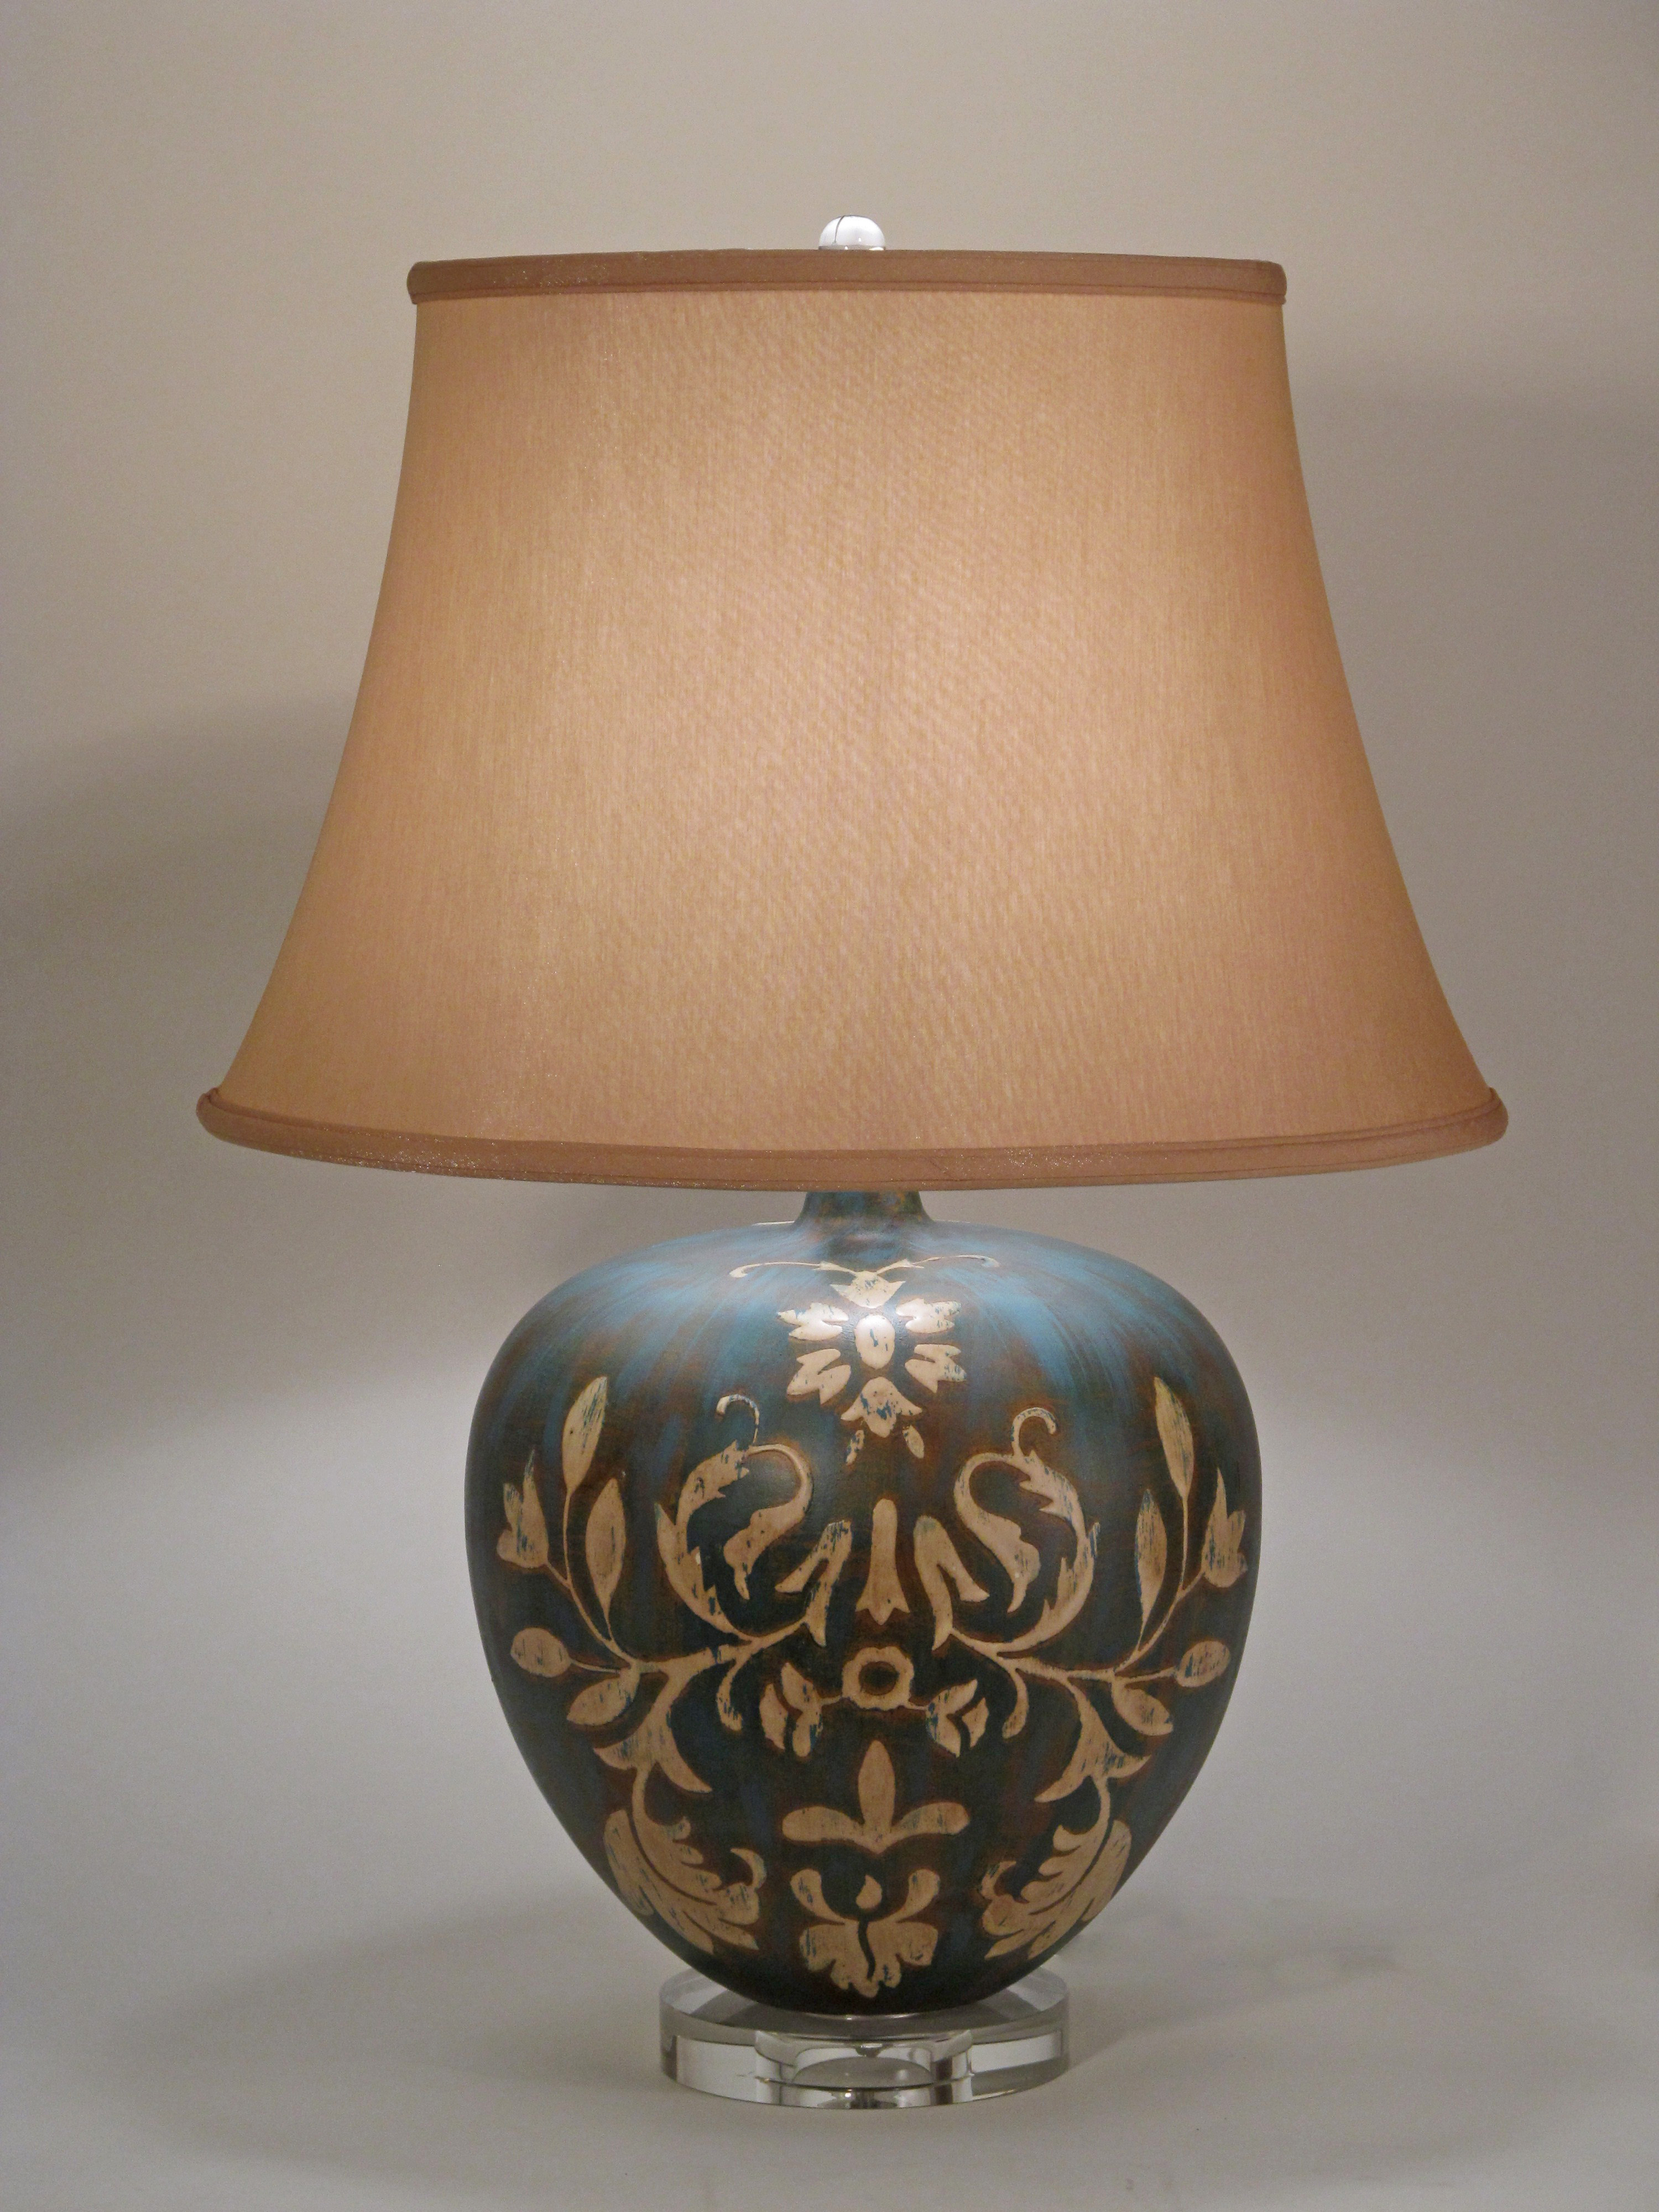 Lighting Accessories Brookfield Wi ... & Lighting Accessories Brookfield | Iron Blog azcodes.com